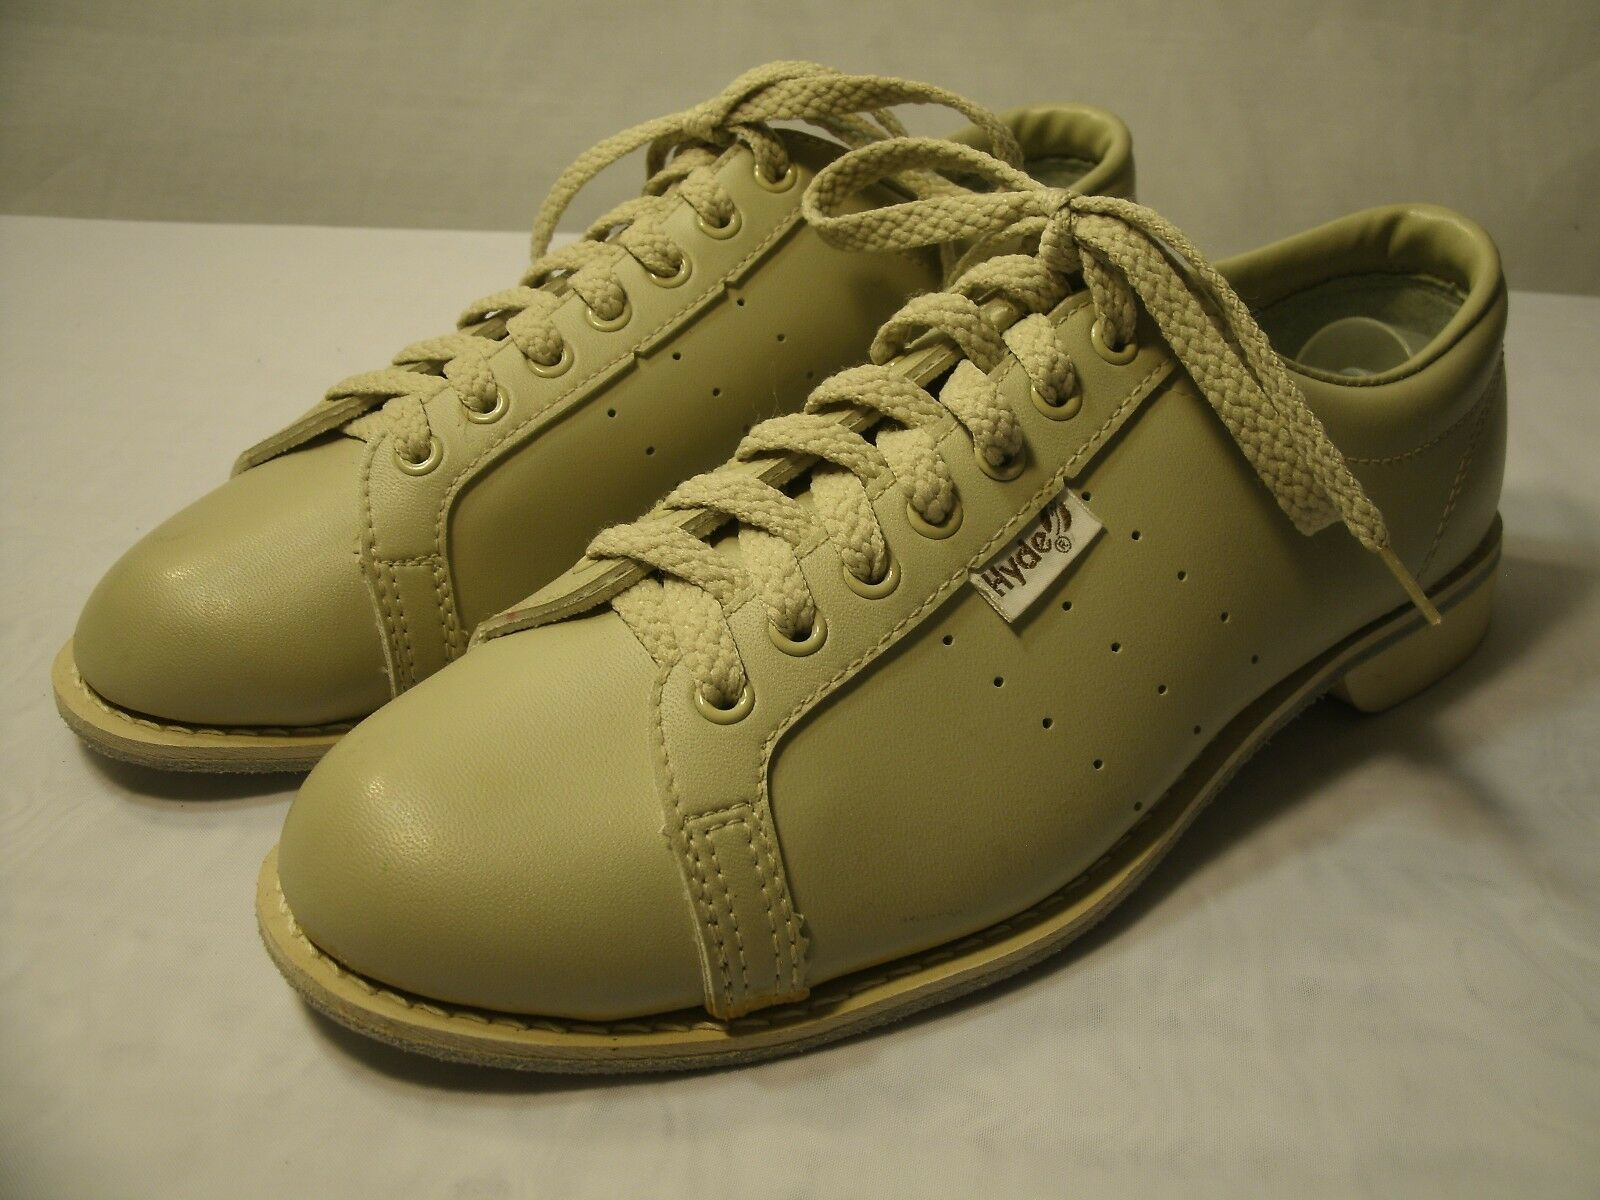 HYDE BEIGE LEATHER BOWLING SHOES   SIZE US 8.5   MEN'S